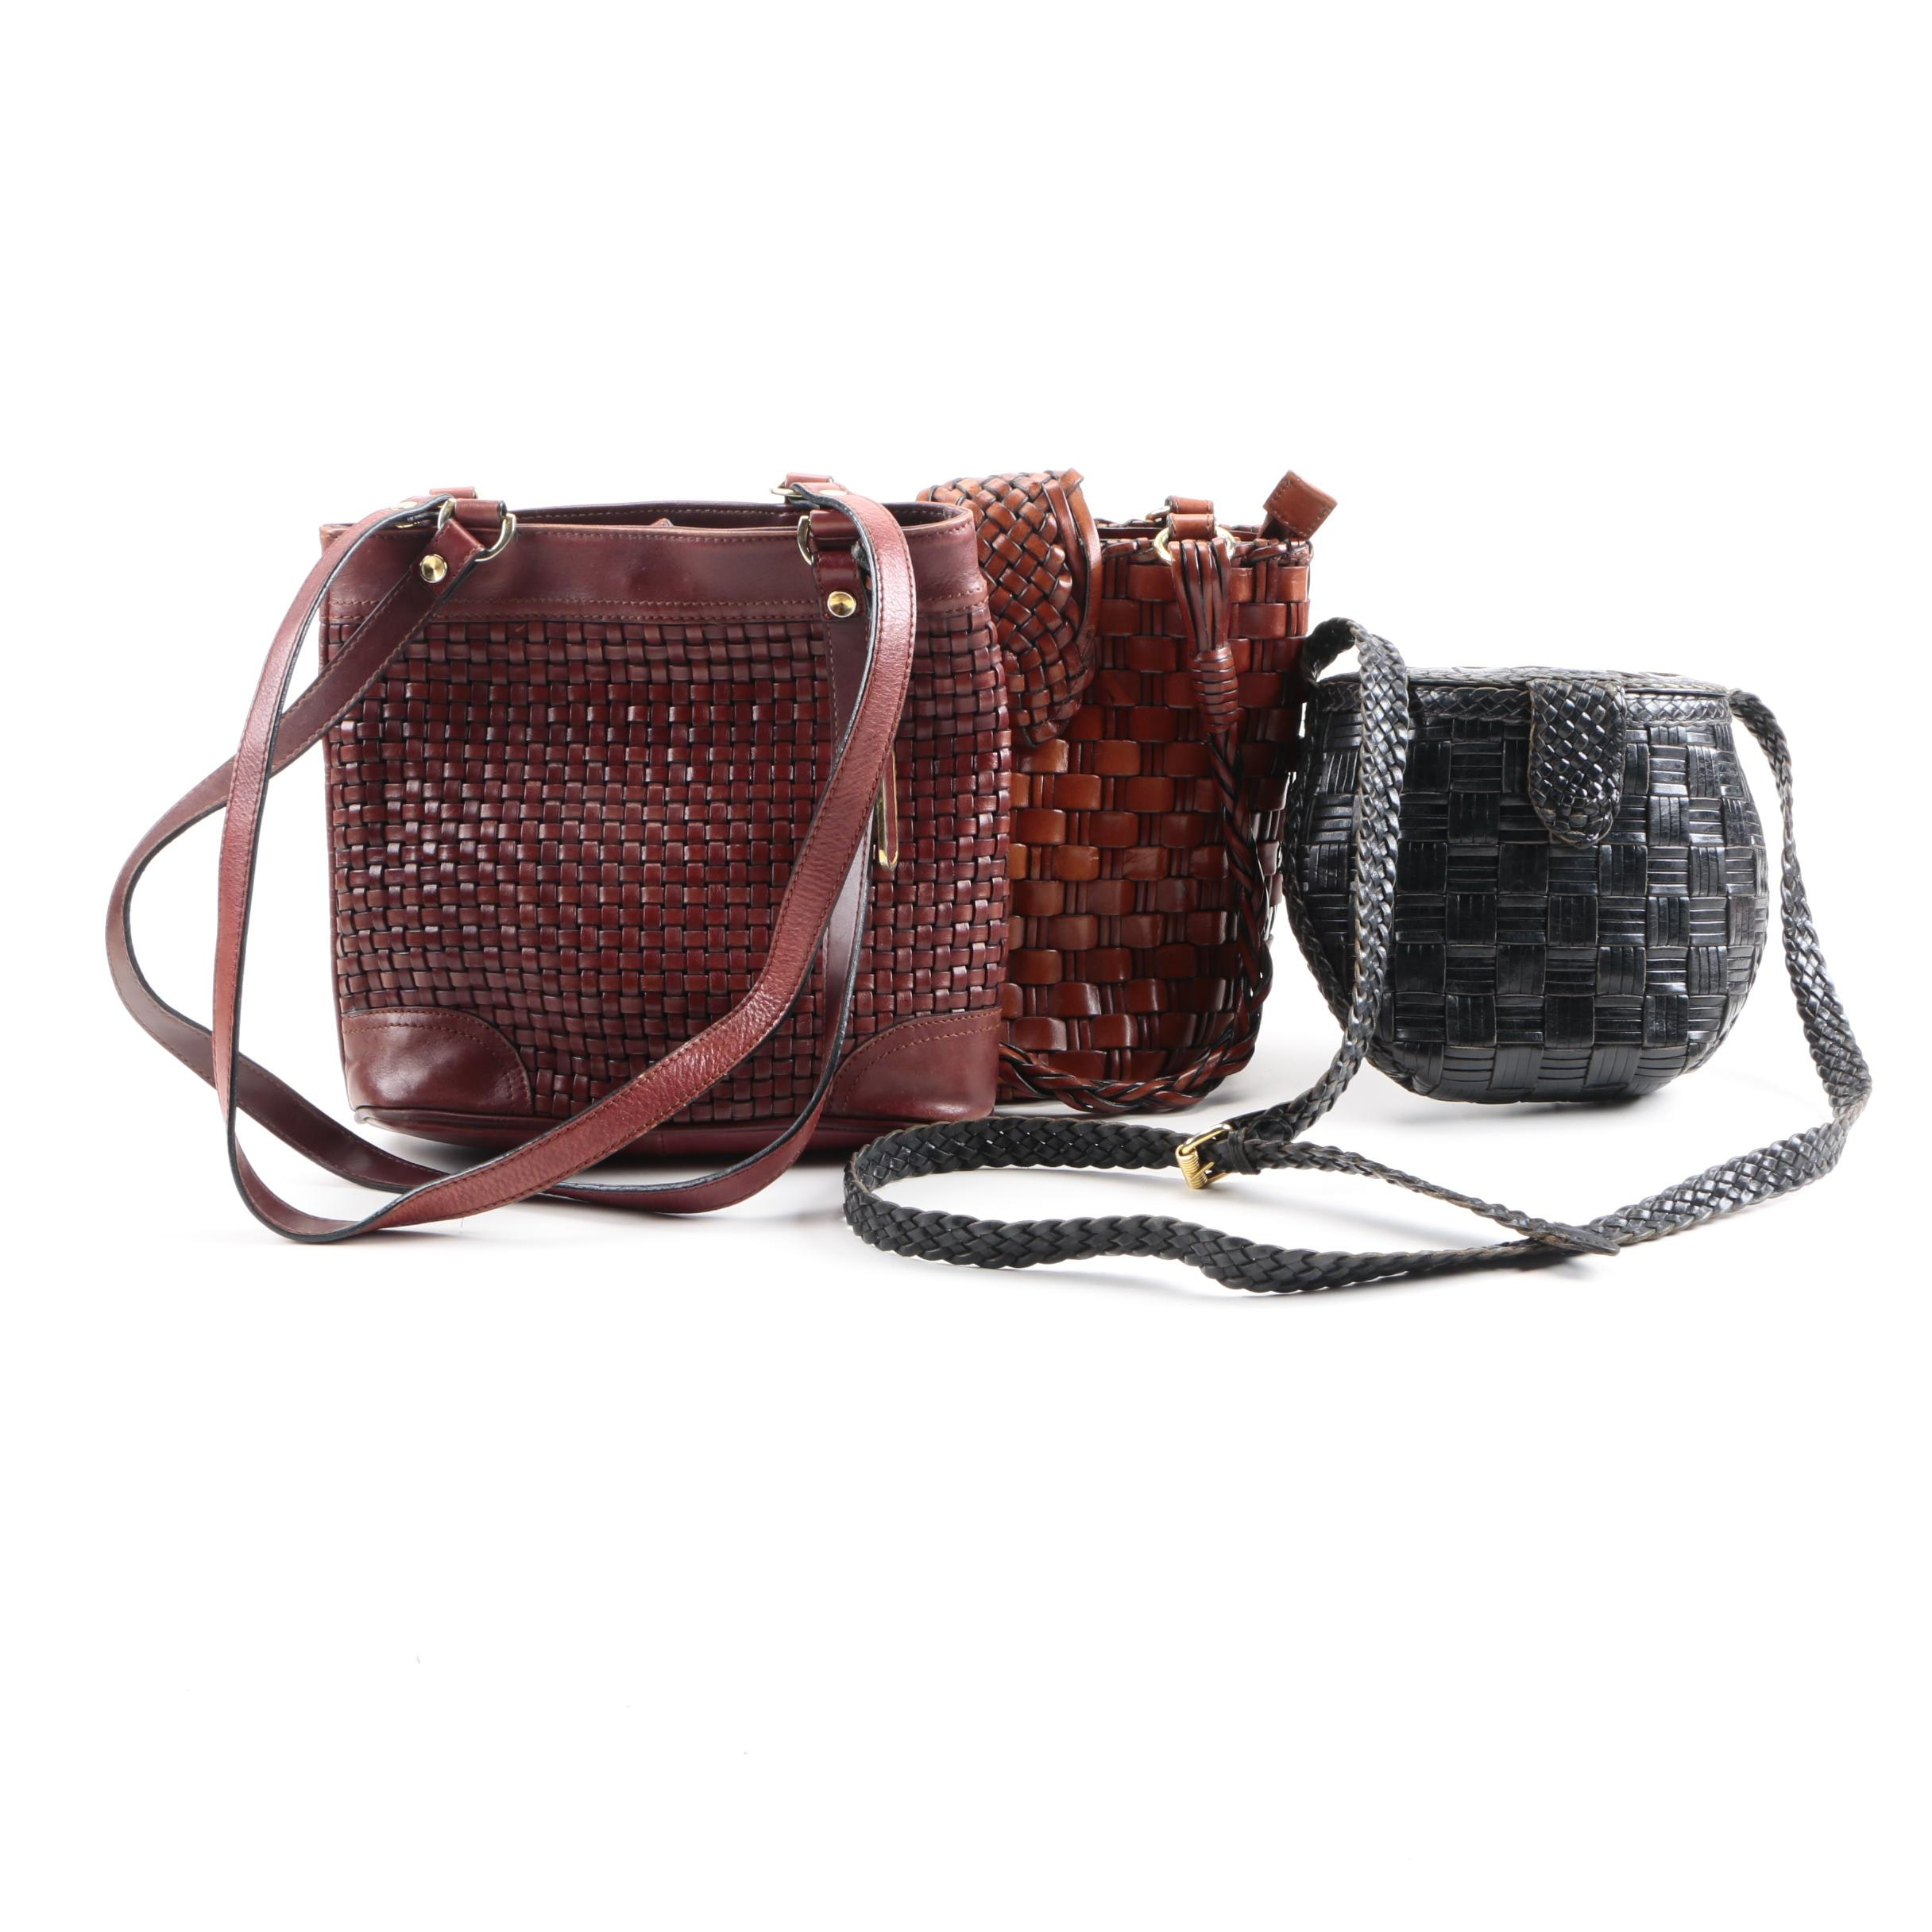 Woven Leather Shoulder Bags Including Diamicci